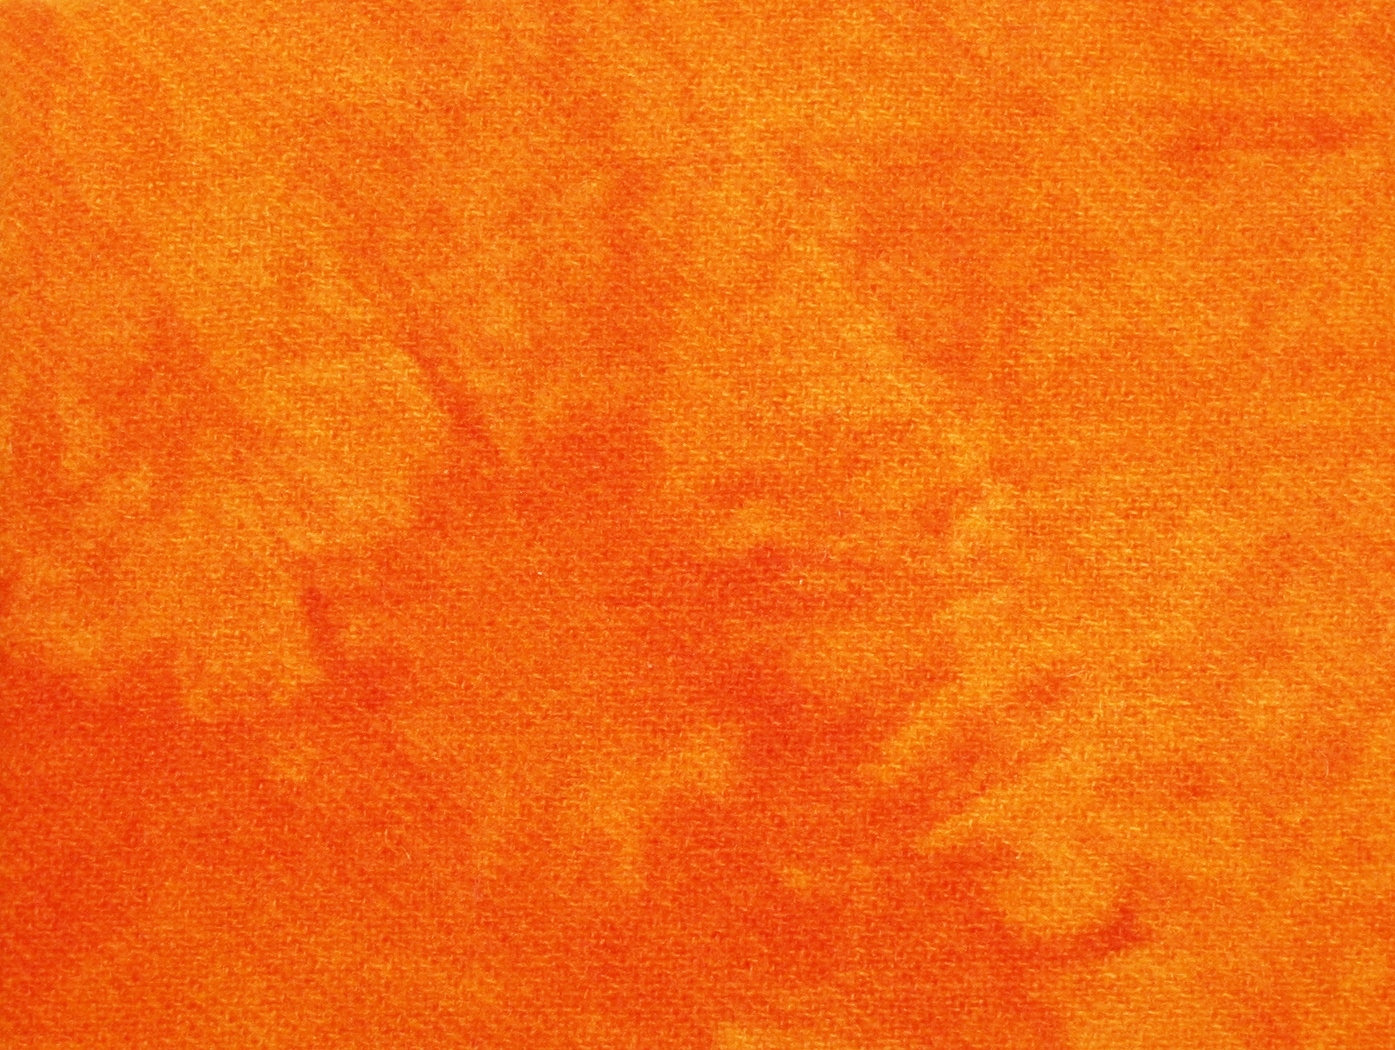 Marigold Hand Dyed 100% Wool Part of the Orange Grove Collection